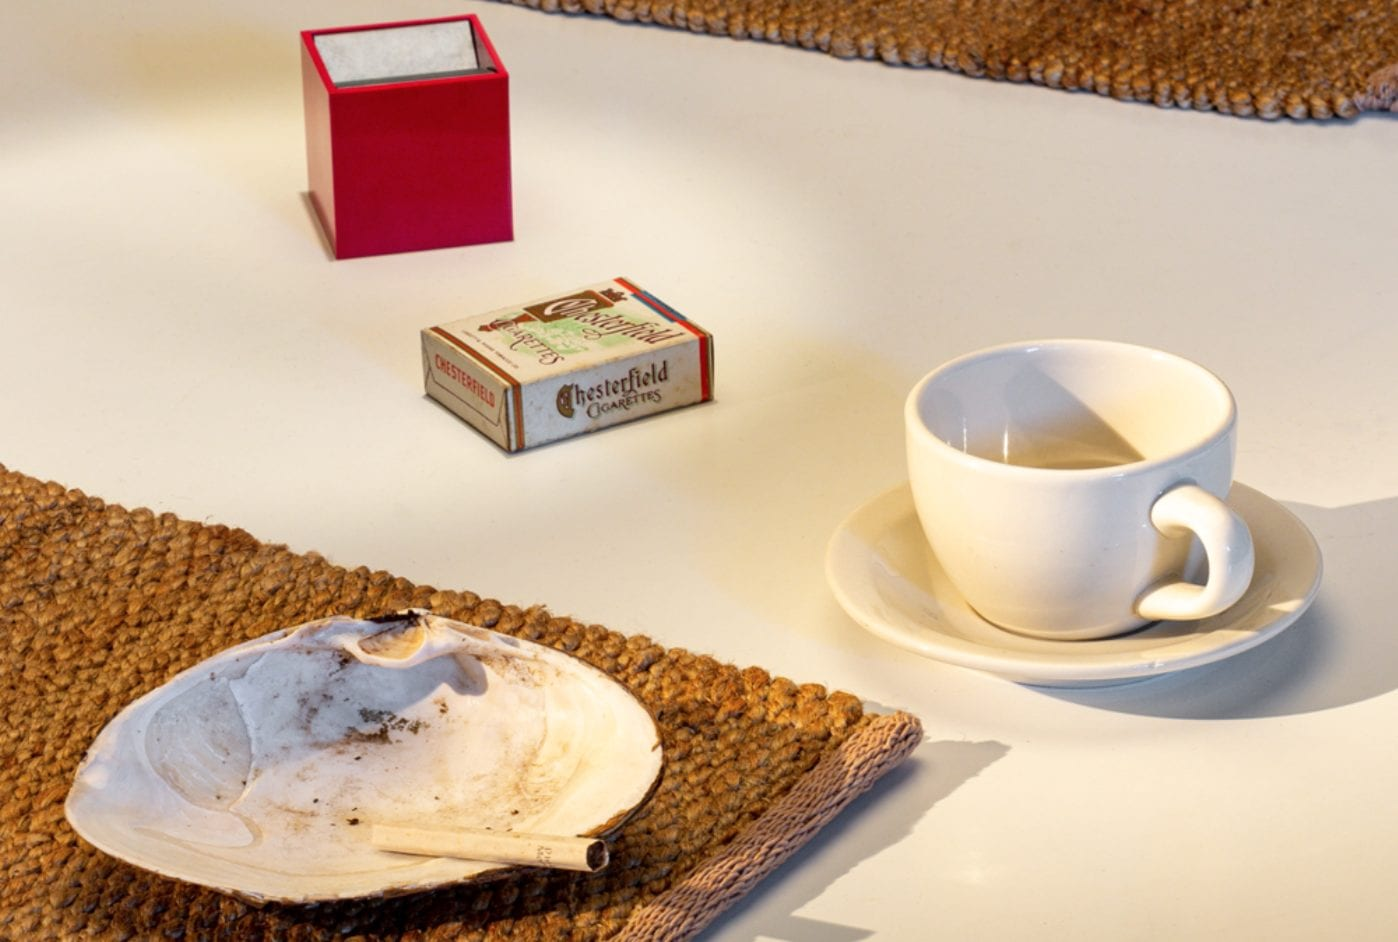 Details of 'The Sculptor and the Ashtray' installation at The Noguchi Museum